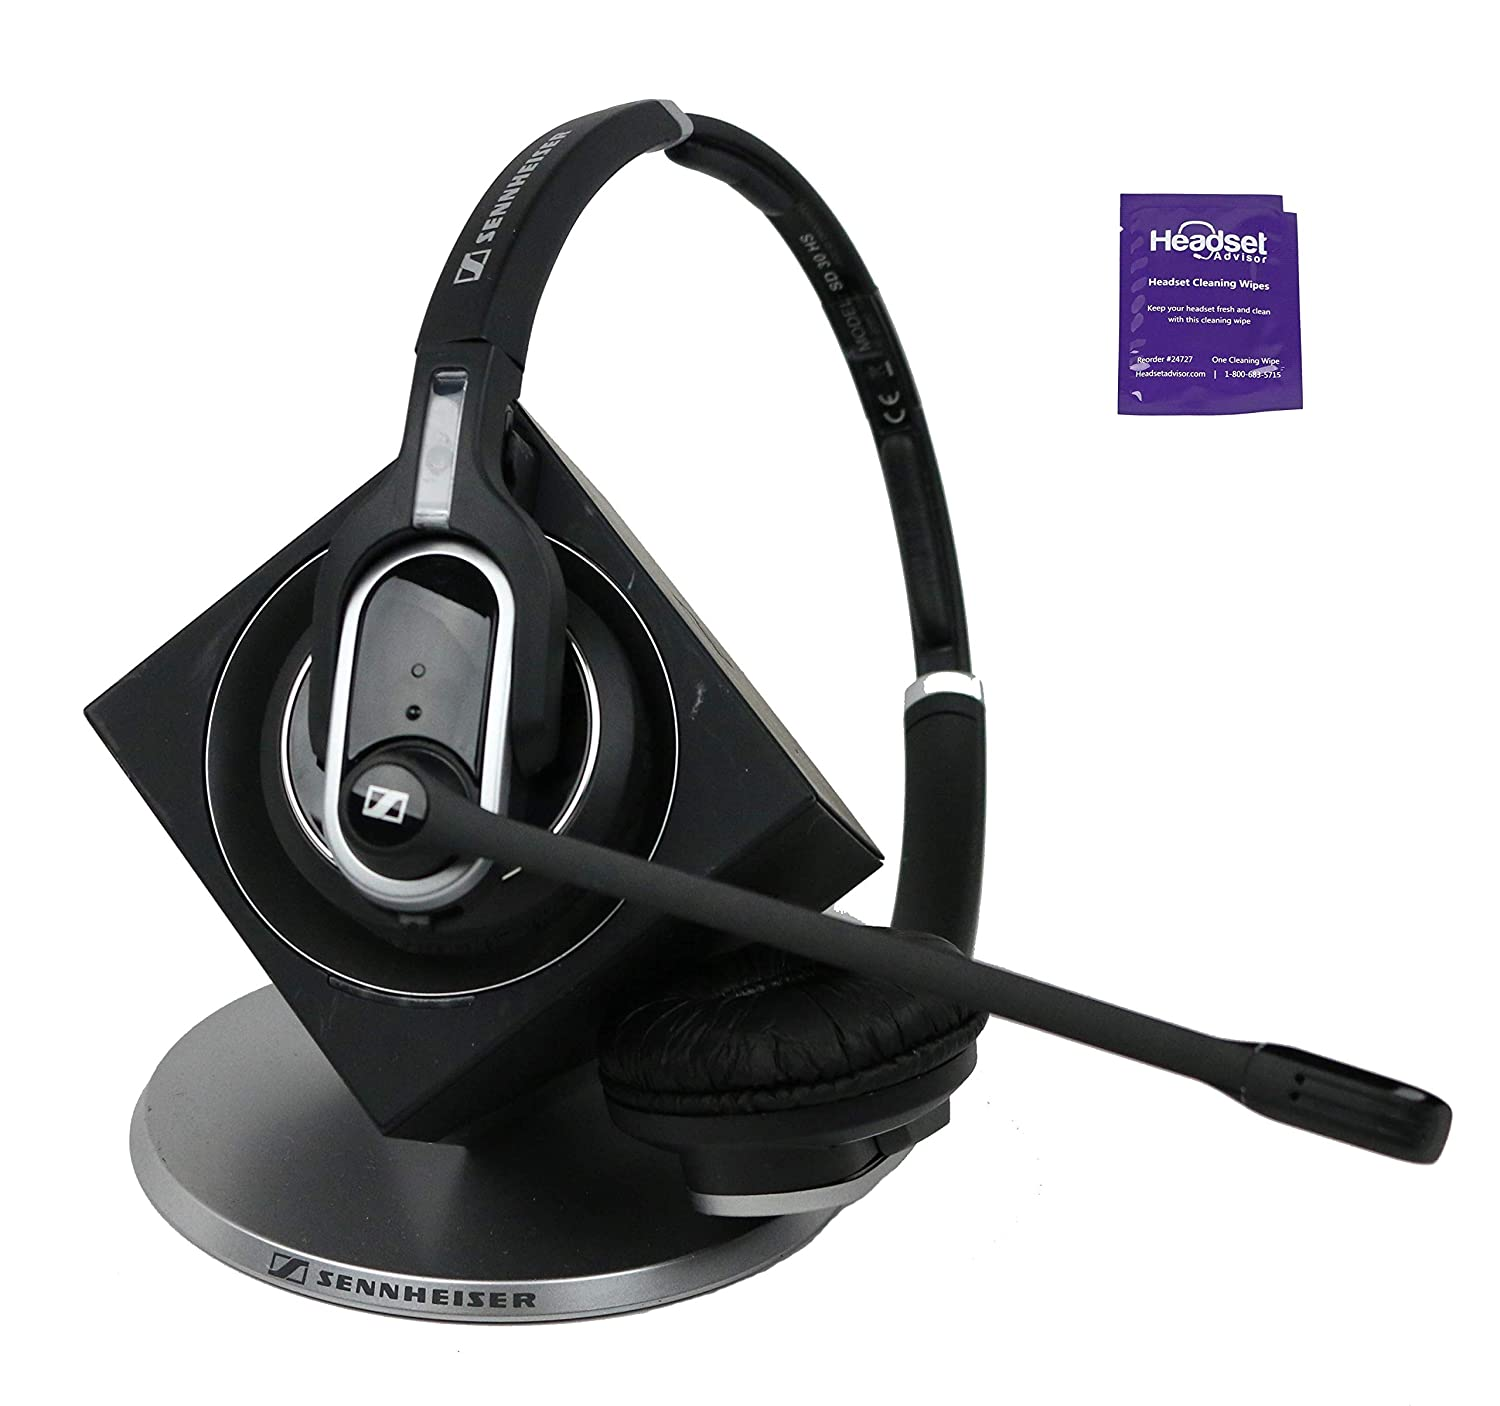 48ff0eeb47c Amazon.com: Sennheiser DW Pro 2 Wireless Headset Included with Free Headset  Advisor Wipe (Certified Refurbished): Electronics